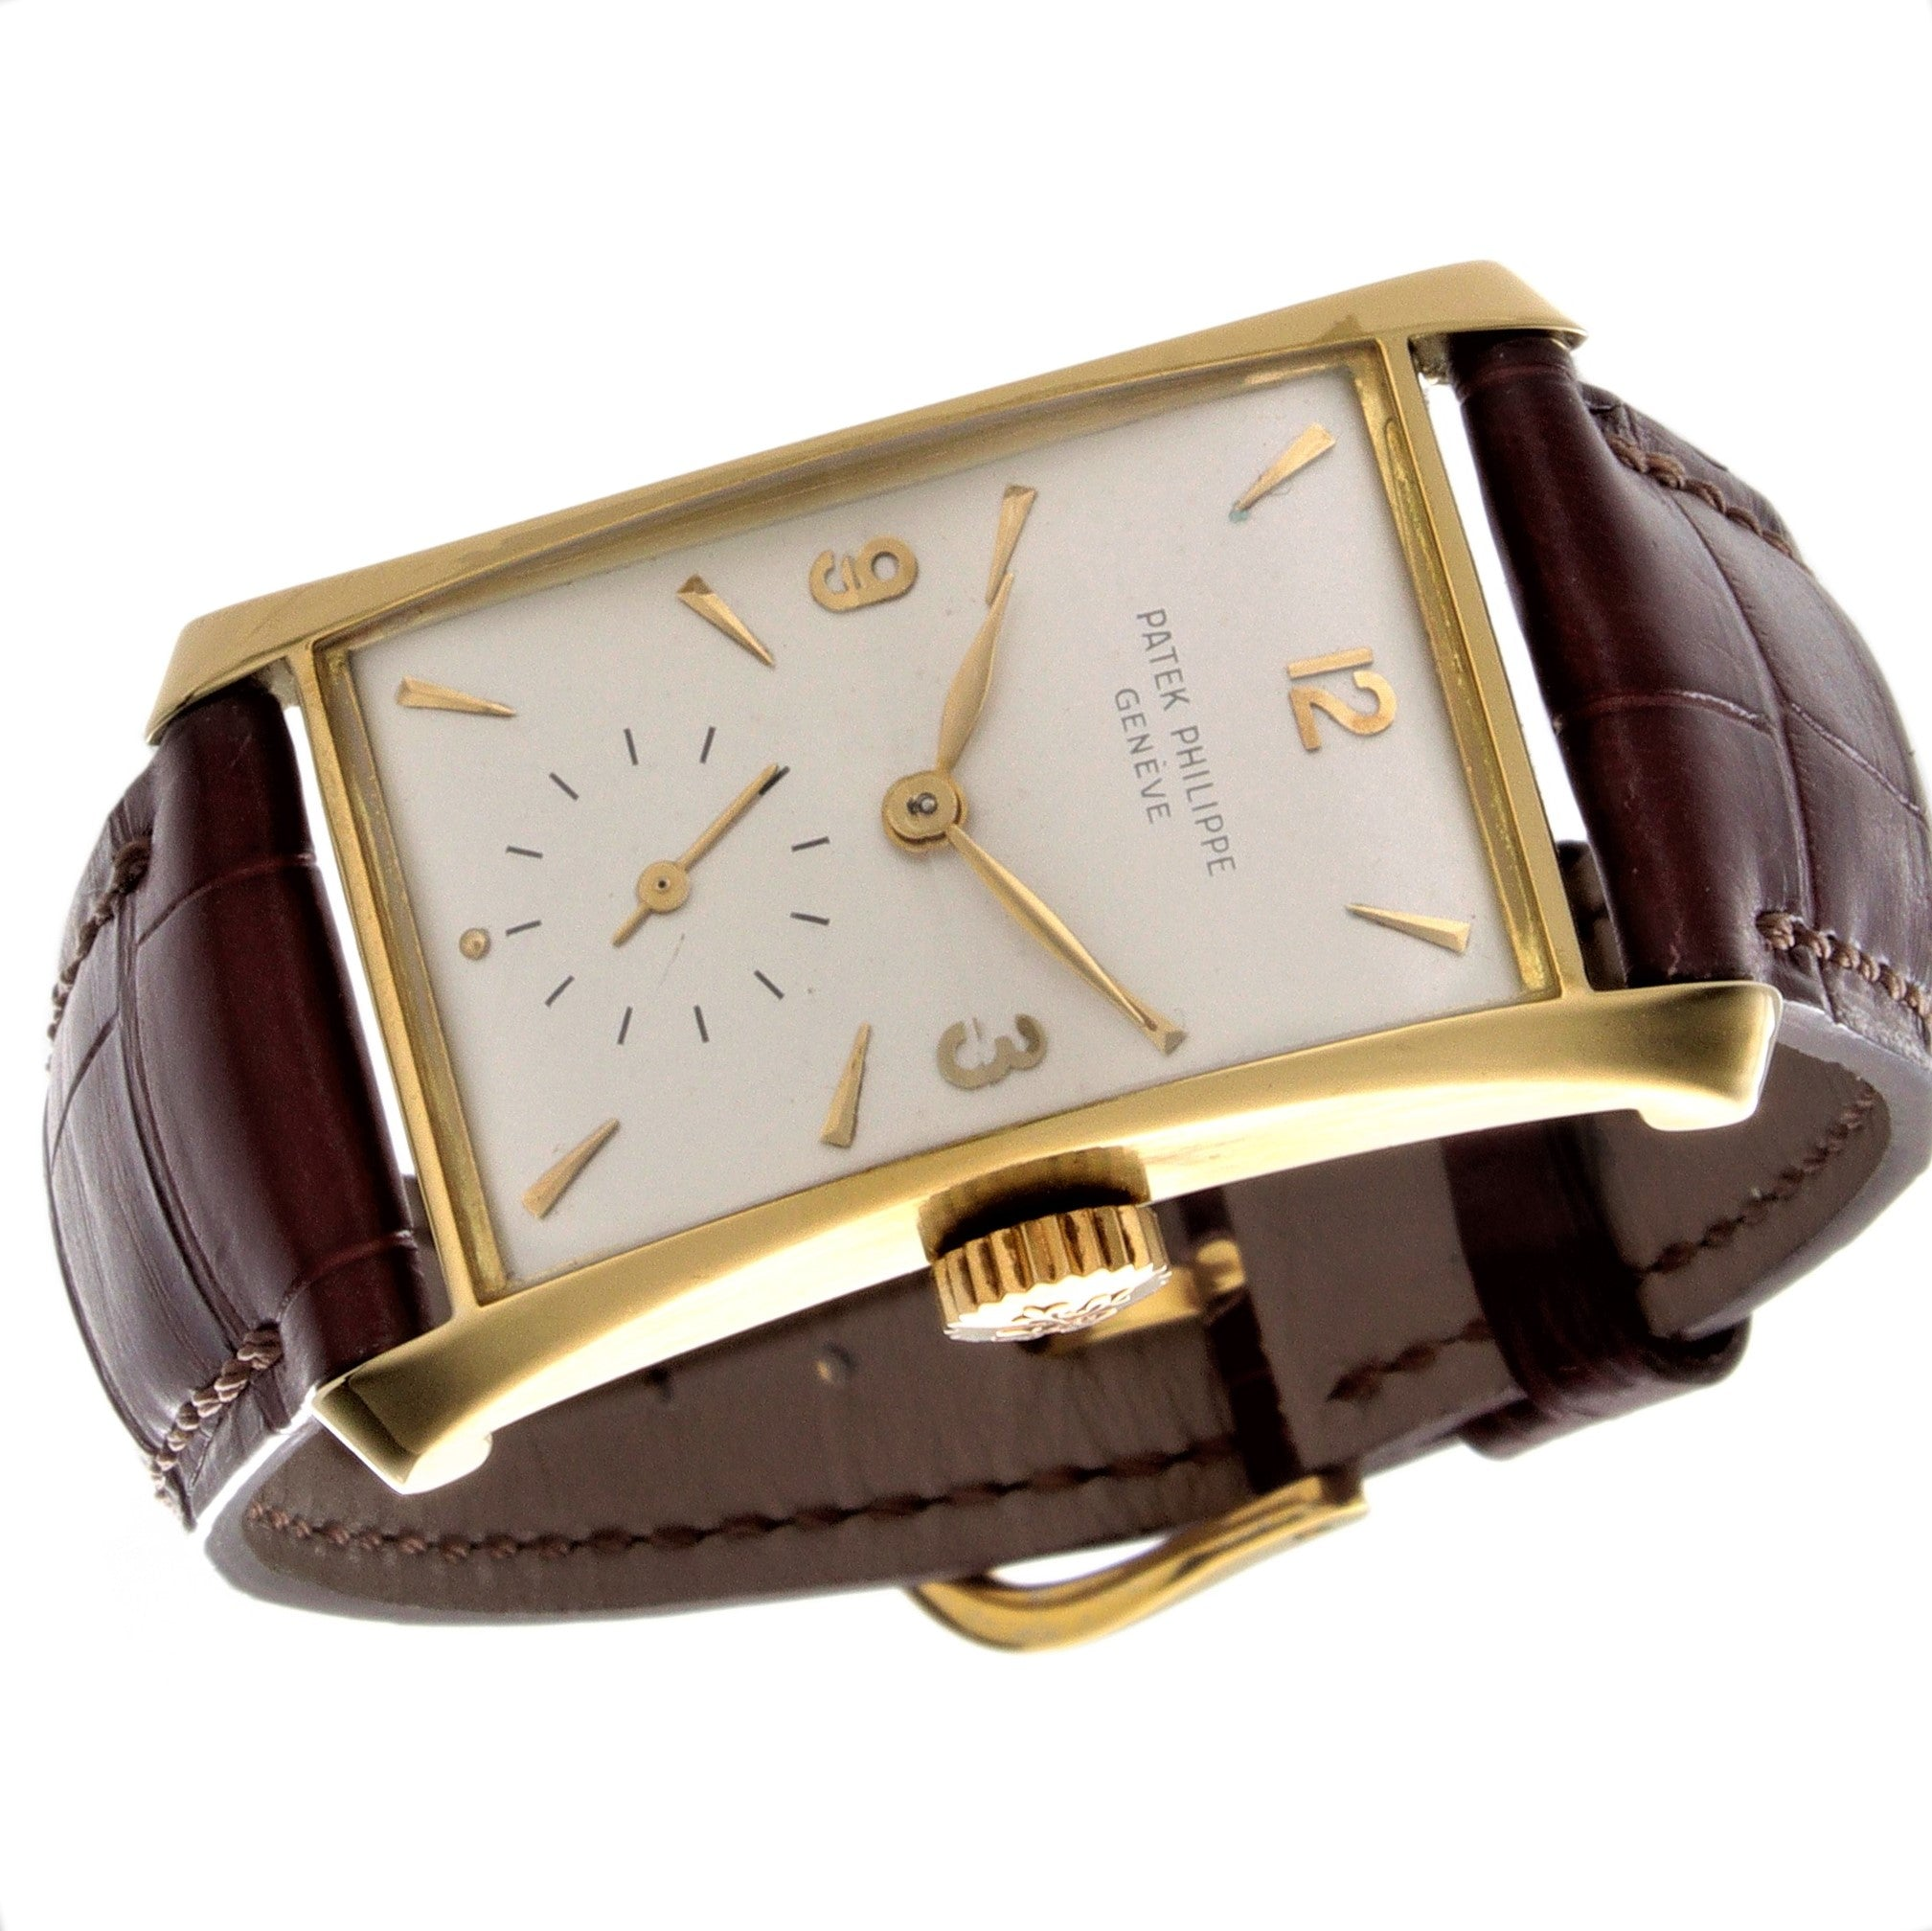 "Patek Philippe 2468J Vintage ""Hour Glass"" Shape Watch Circa 1955"